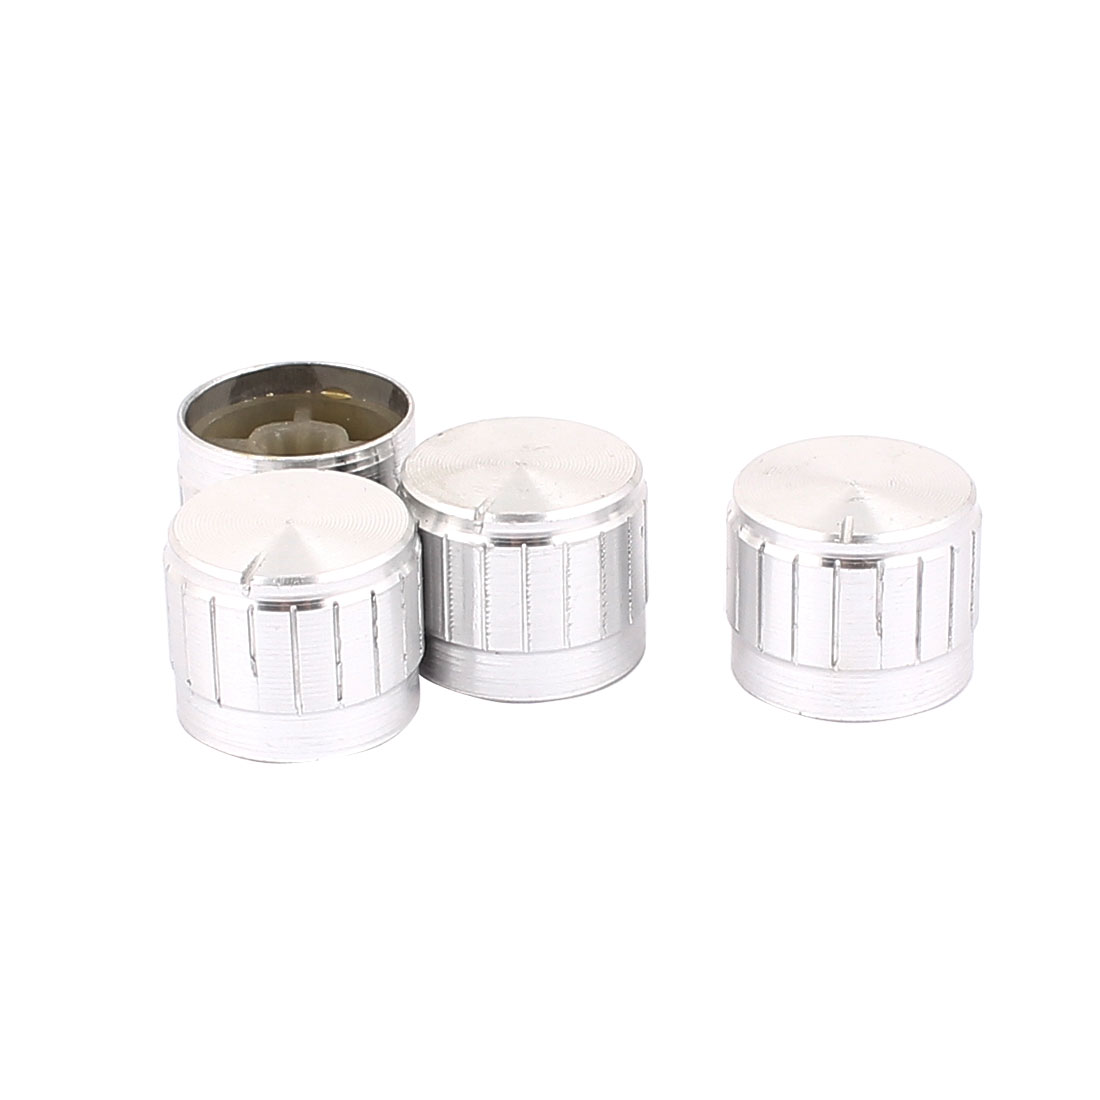 4 Pcs 21mm x 6mm Aluminium Alloy Potentiometer Control Knob Mini Cap Knurled Button Silver Tone